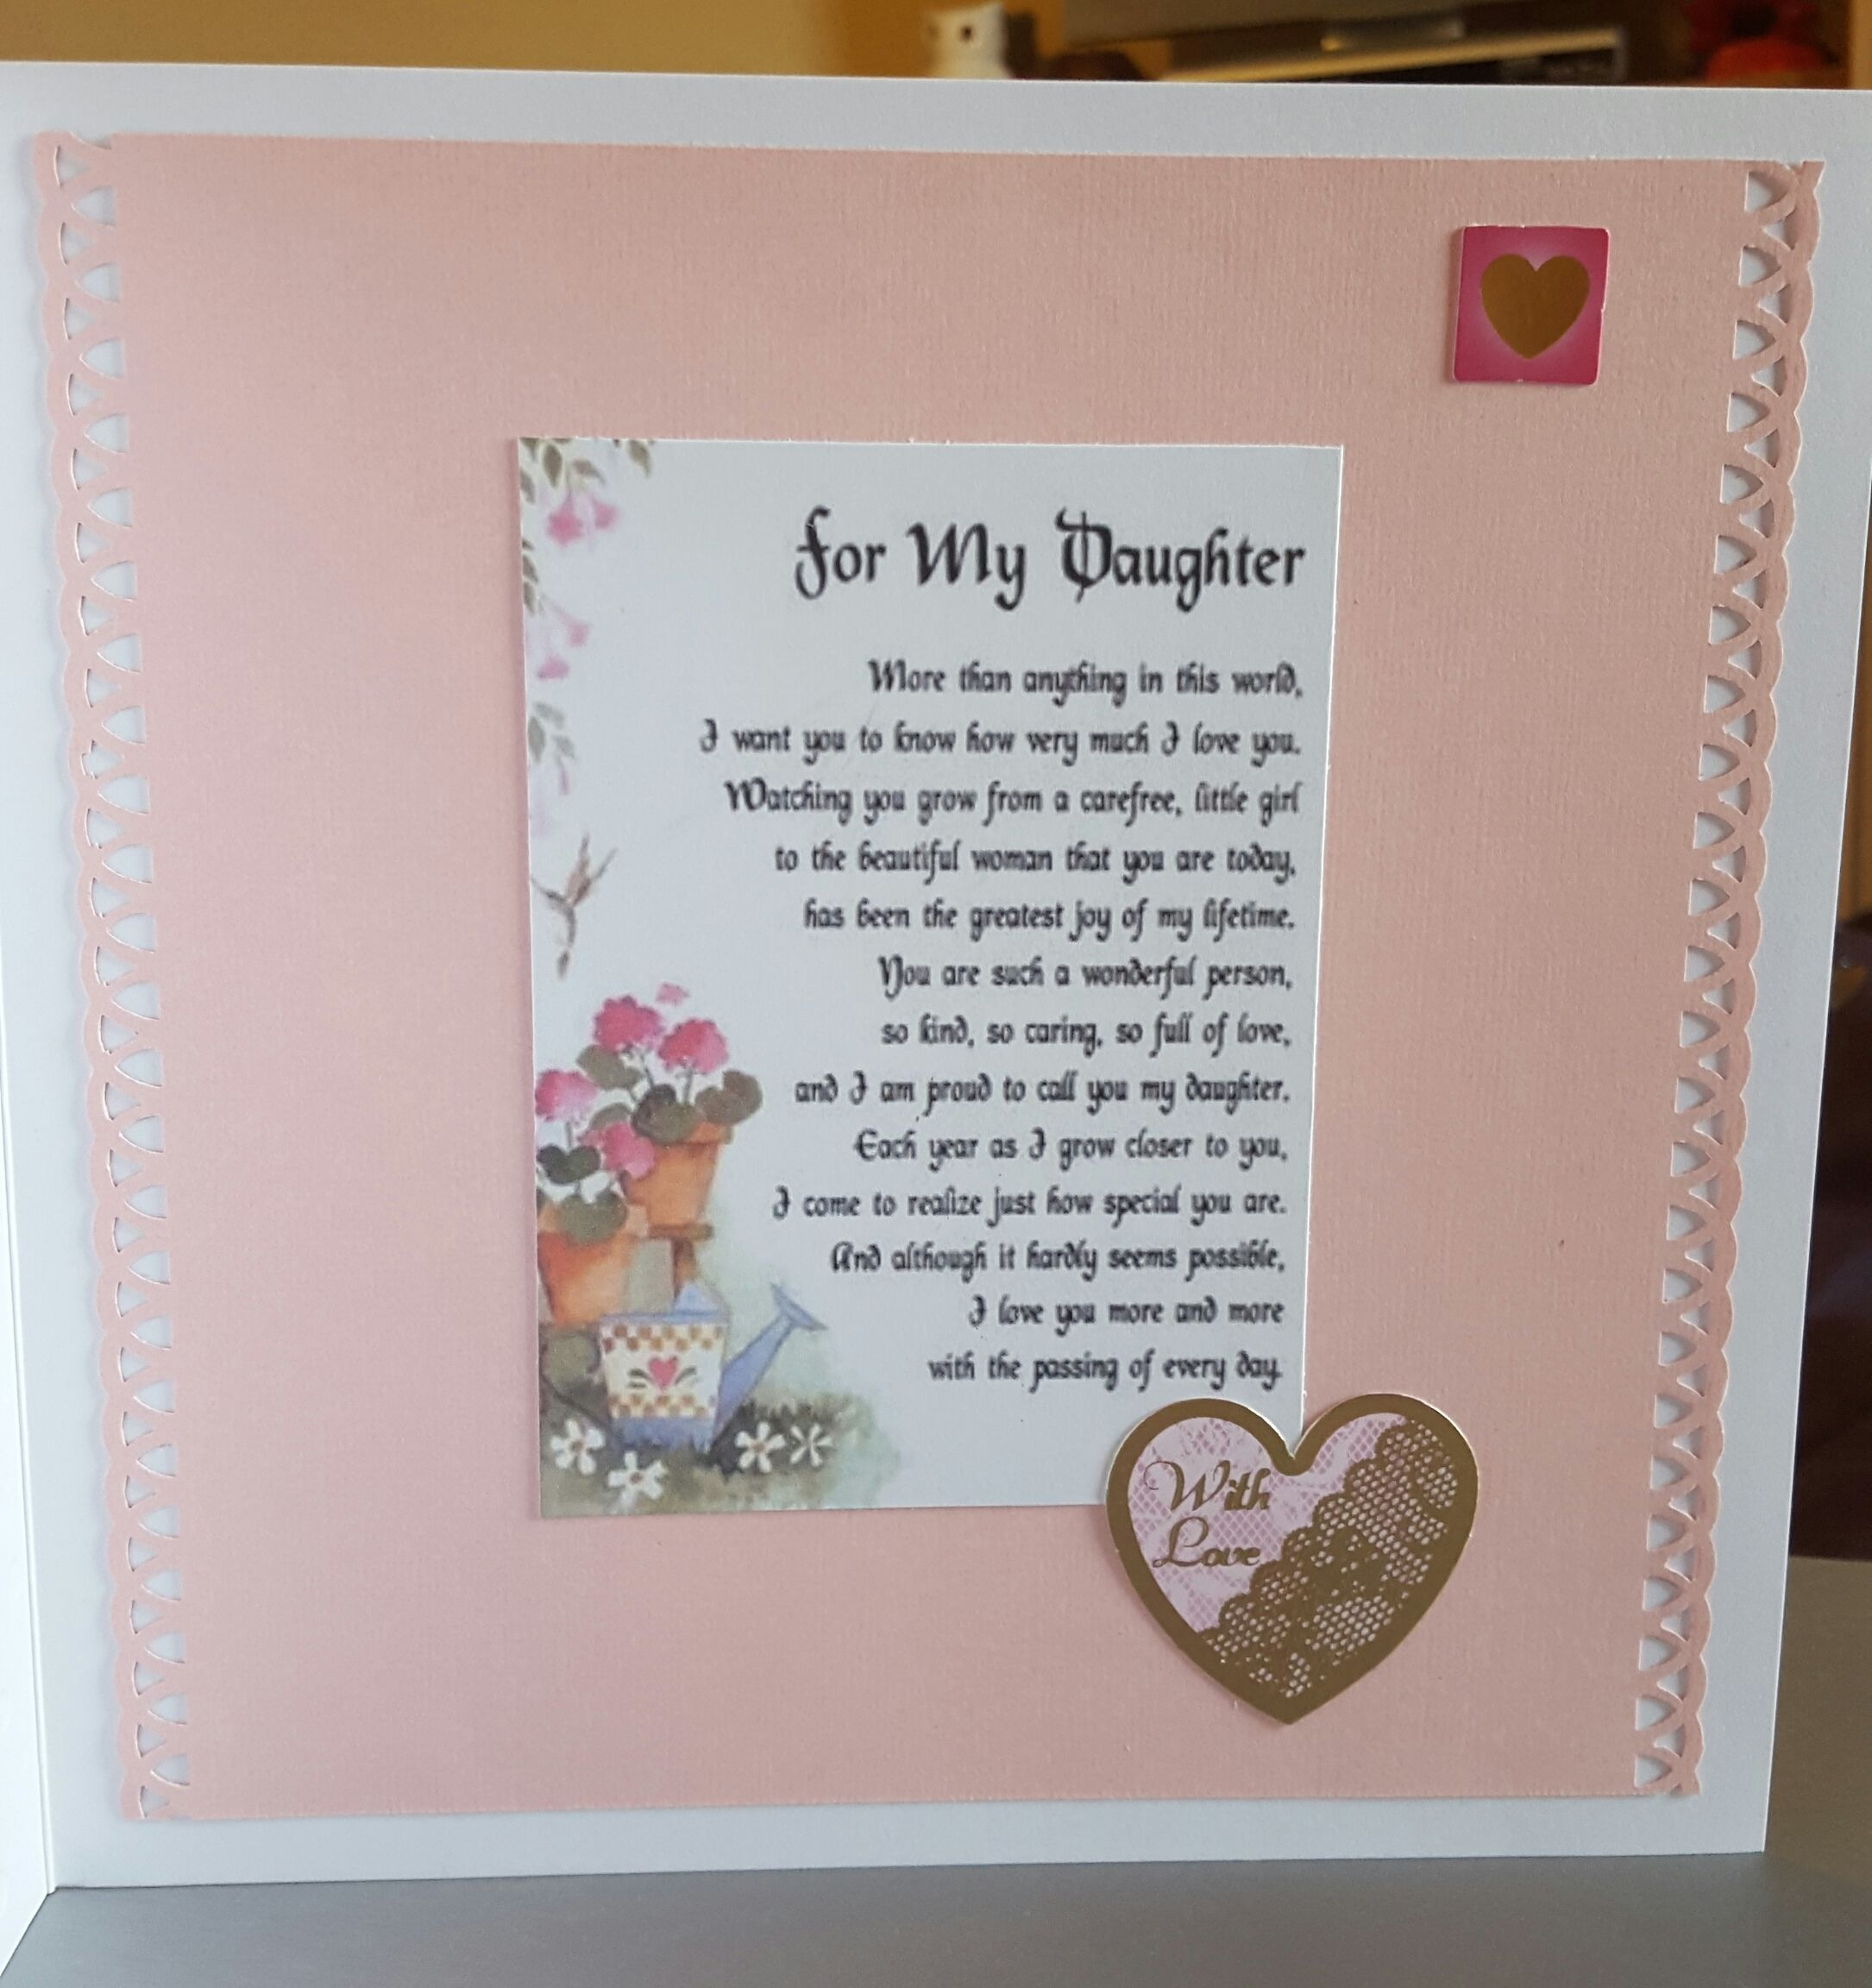 Daughter Birthday Card Elegant Inside With Verse Personalised With Name Handmade Daughter Birthday Cards Birthday Verses For Cards Facebook Birthday Cards